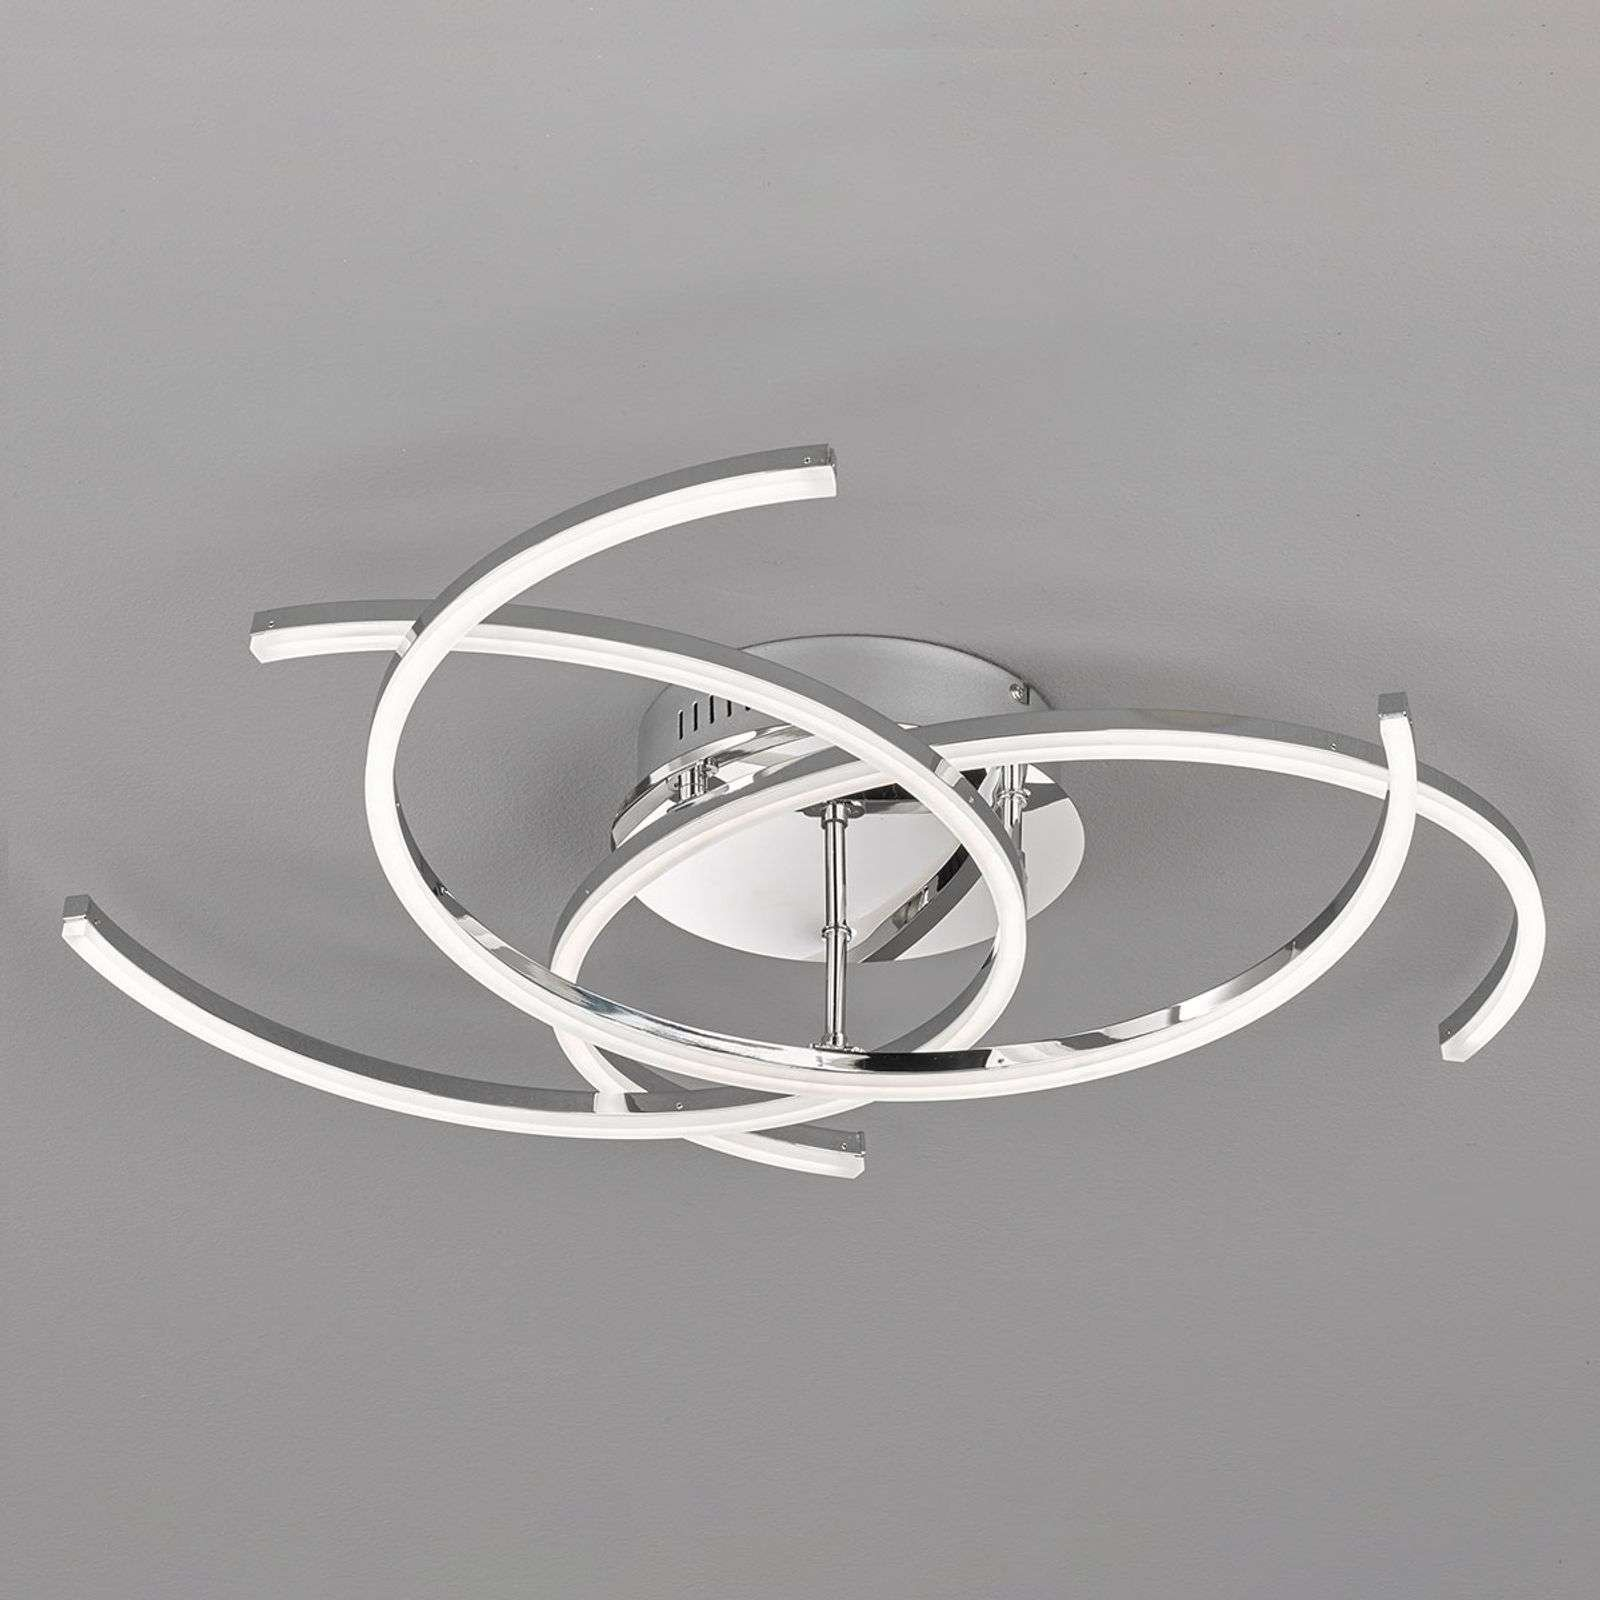 Adjustable ceiling lamp Visby  dimmable   68 cm